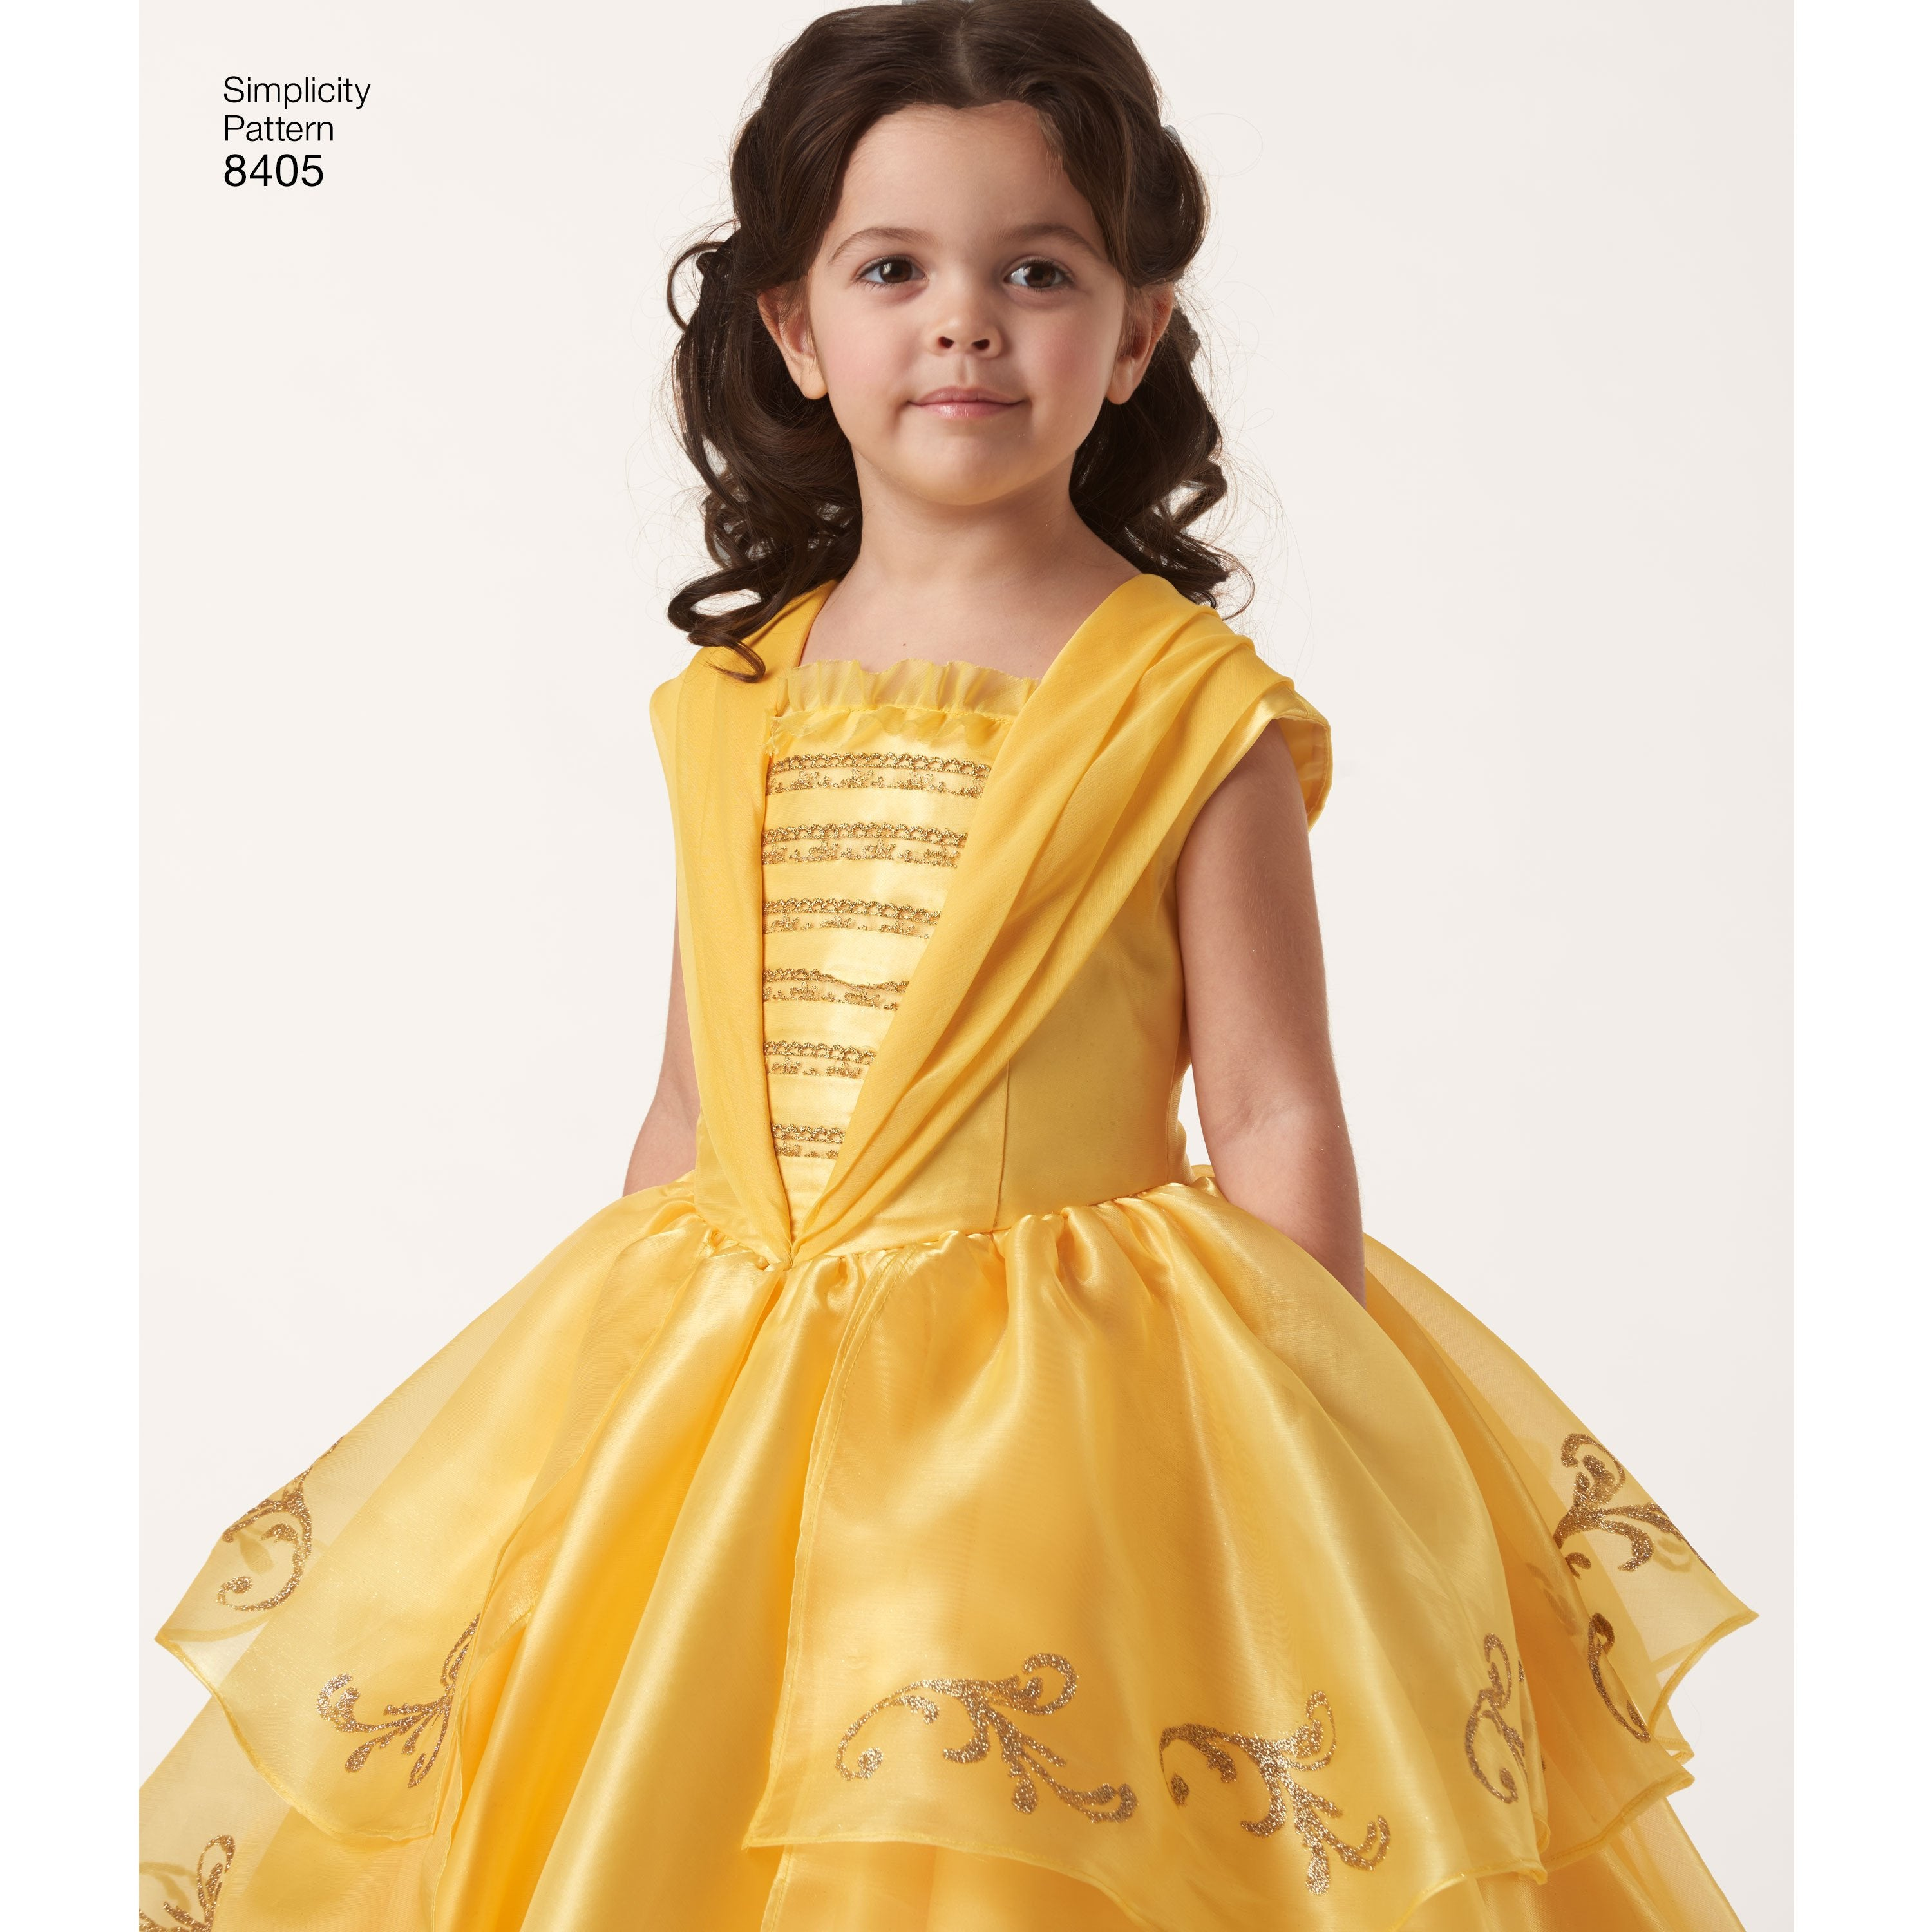 S8405 Disney Beauty and the Beast Costume Child and Doll